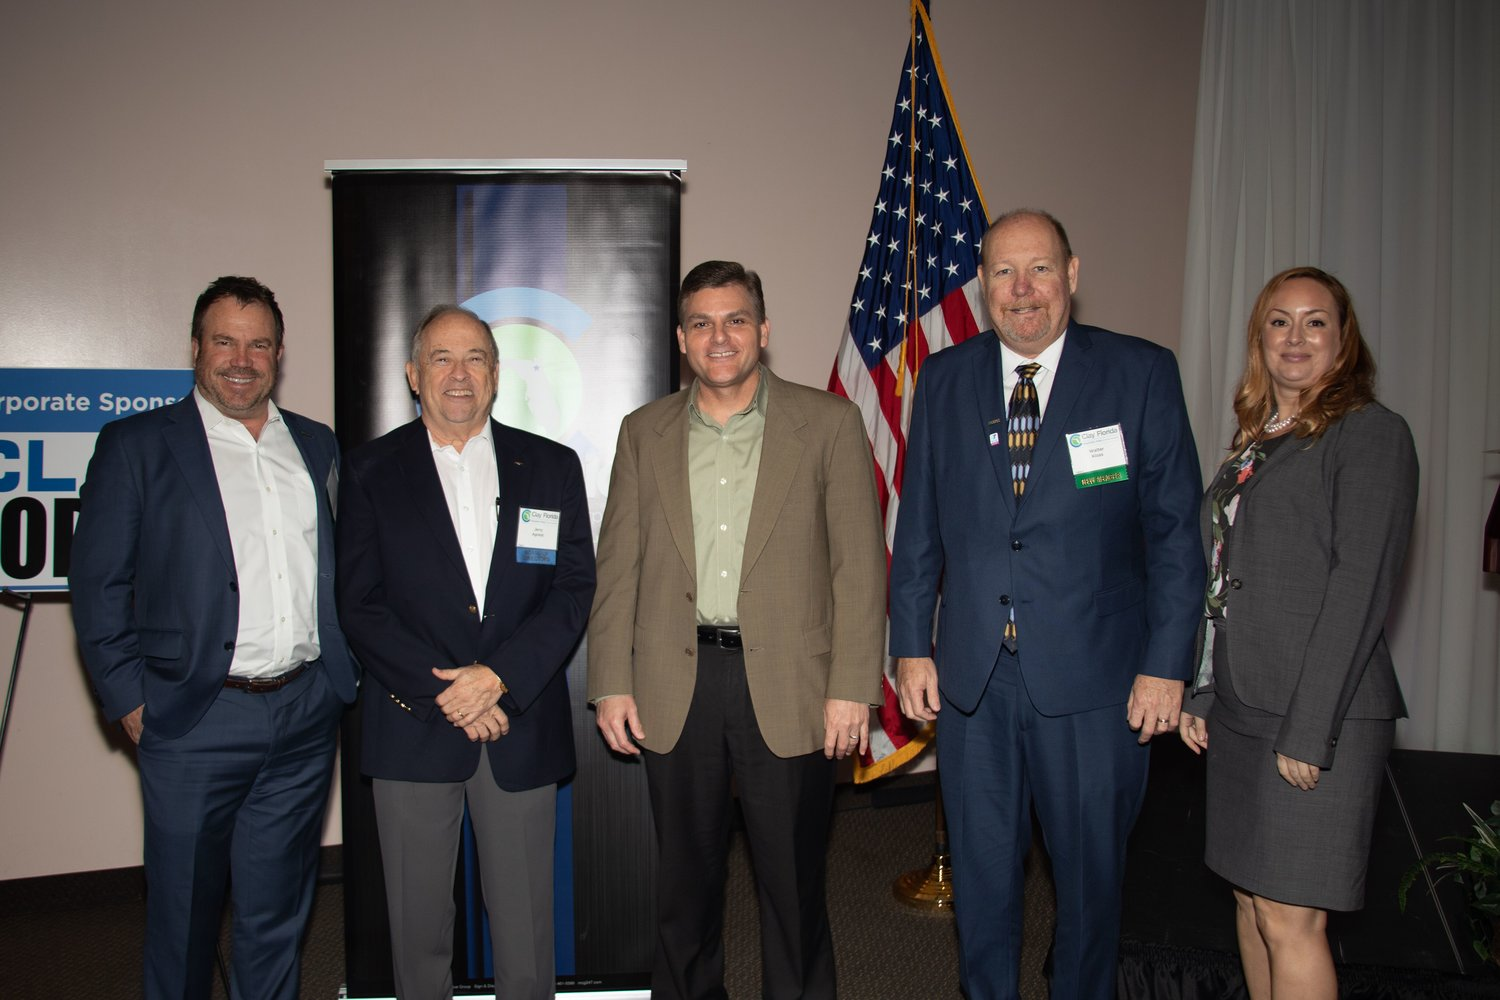 From left, Monte Lambert from event-sponsor Wantman Group Inc., Jerry Agresti of Developers Realty Group, Jeff Sheffield, from the Clay EDC Board of Directors and North Florida TPO Executive Director, Walter Kloss and Eliza Partingon, both of Wantman Group, share the stage at the EDC's first quarter luncheon.